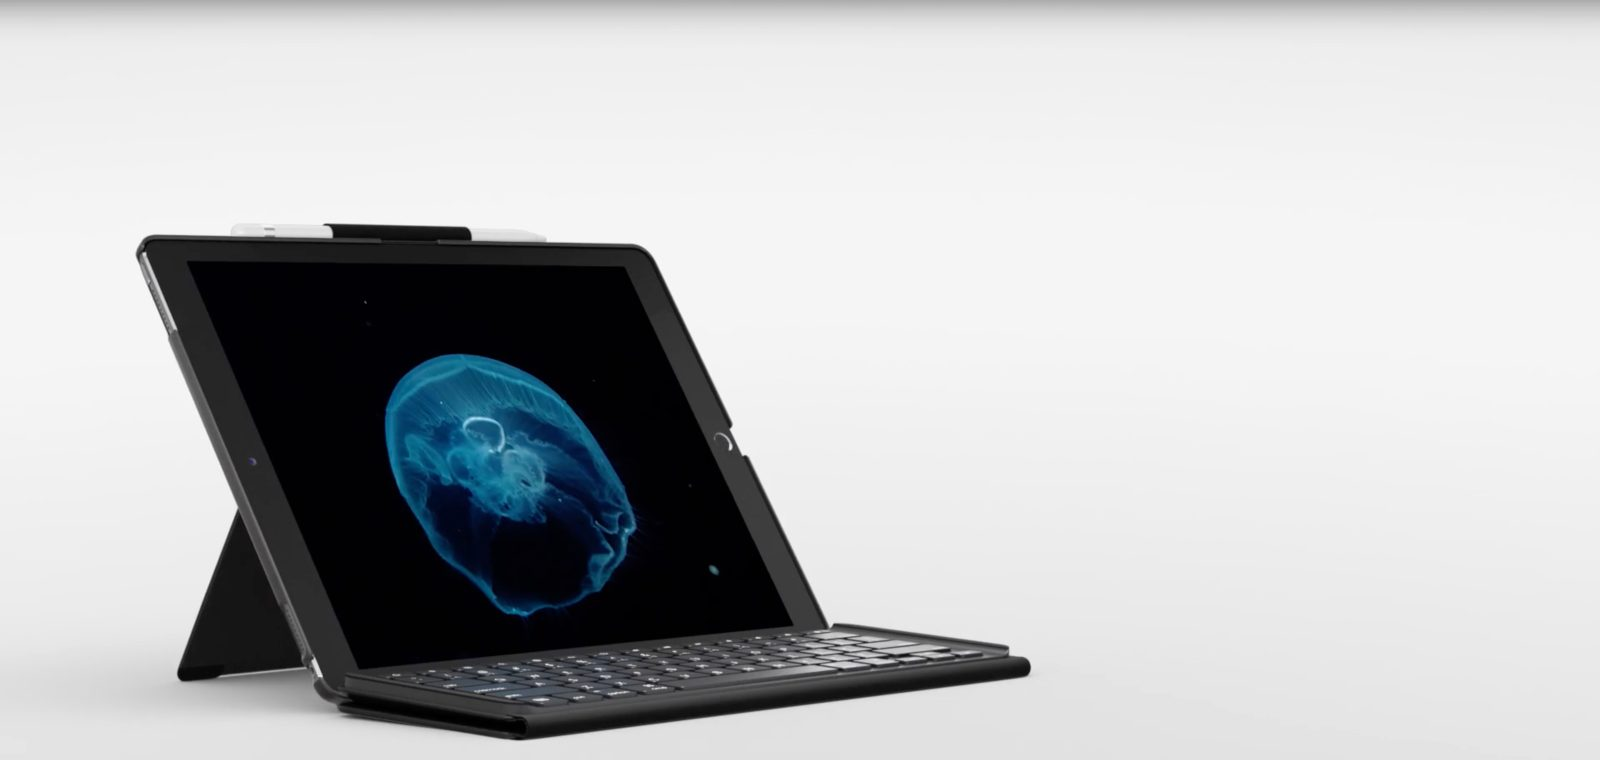 fb126abf98a Logitech unveils new Slim Combo case with Smart Connector support for iPad  Pro